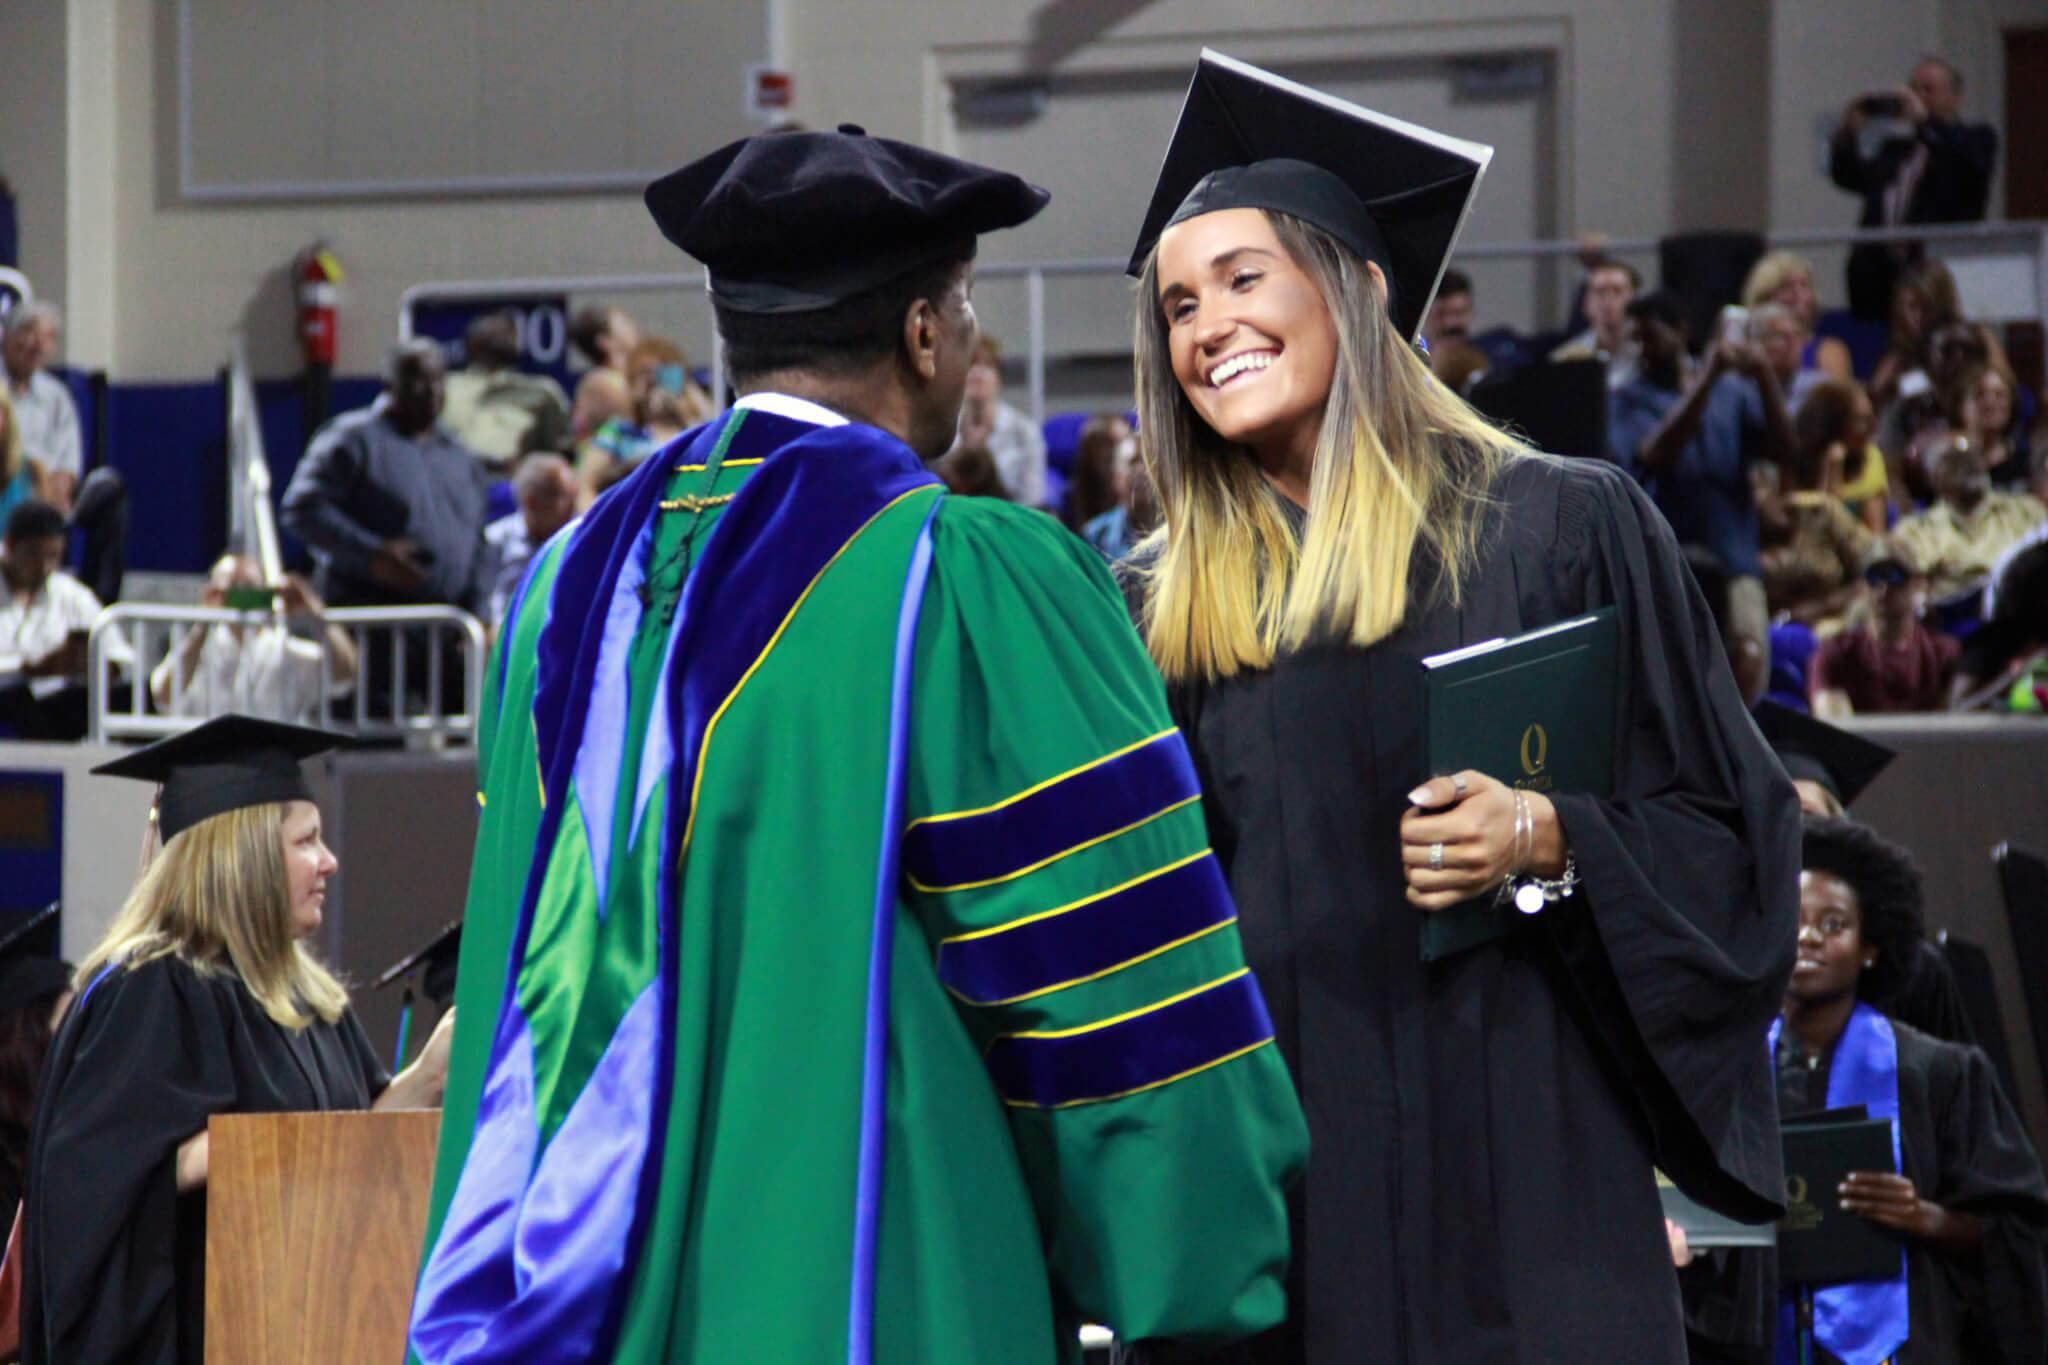 FGCU graduates more than 1600 in the 2016 spring commencement ceremony